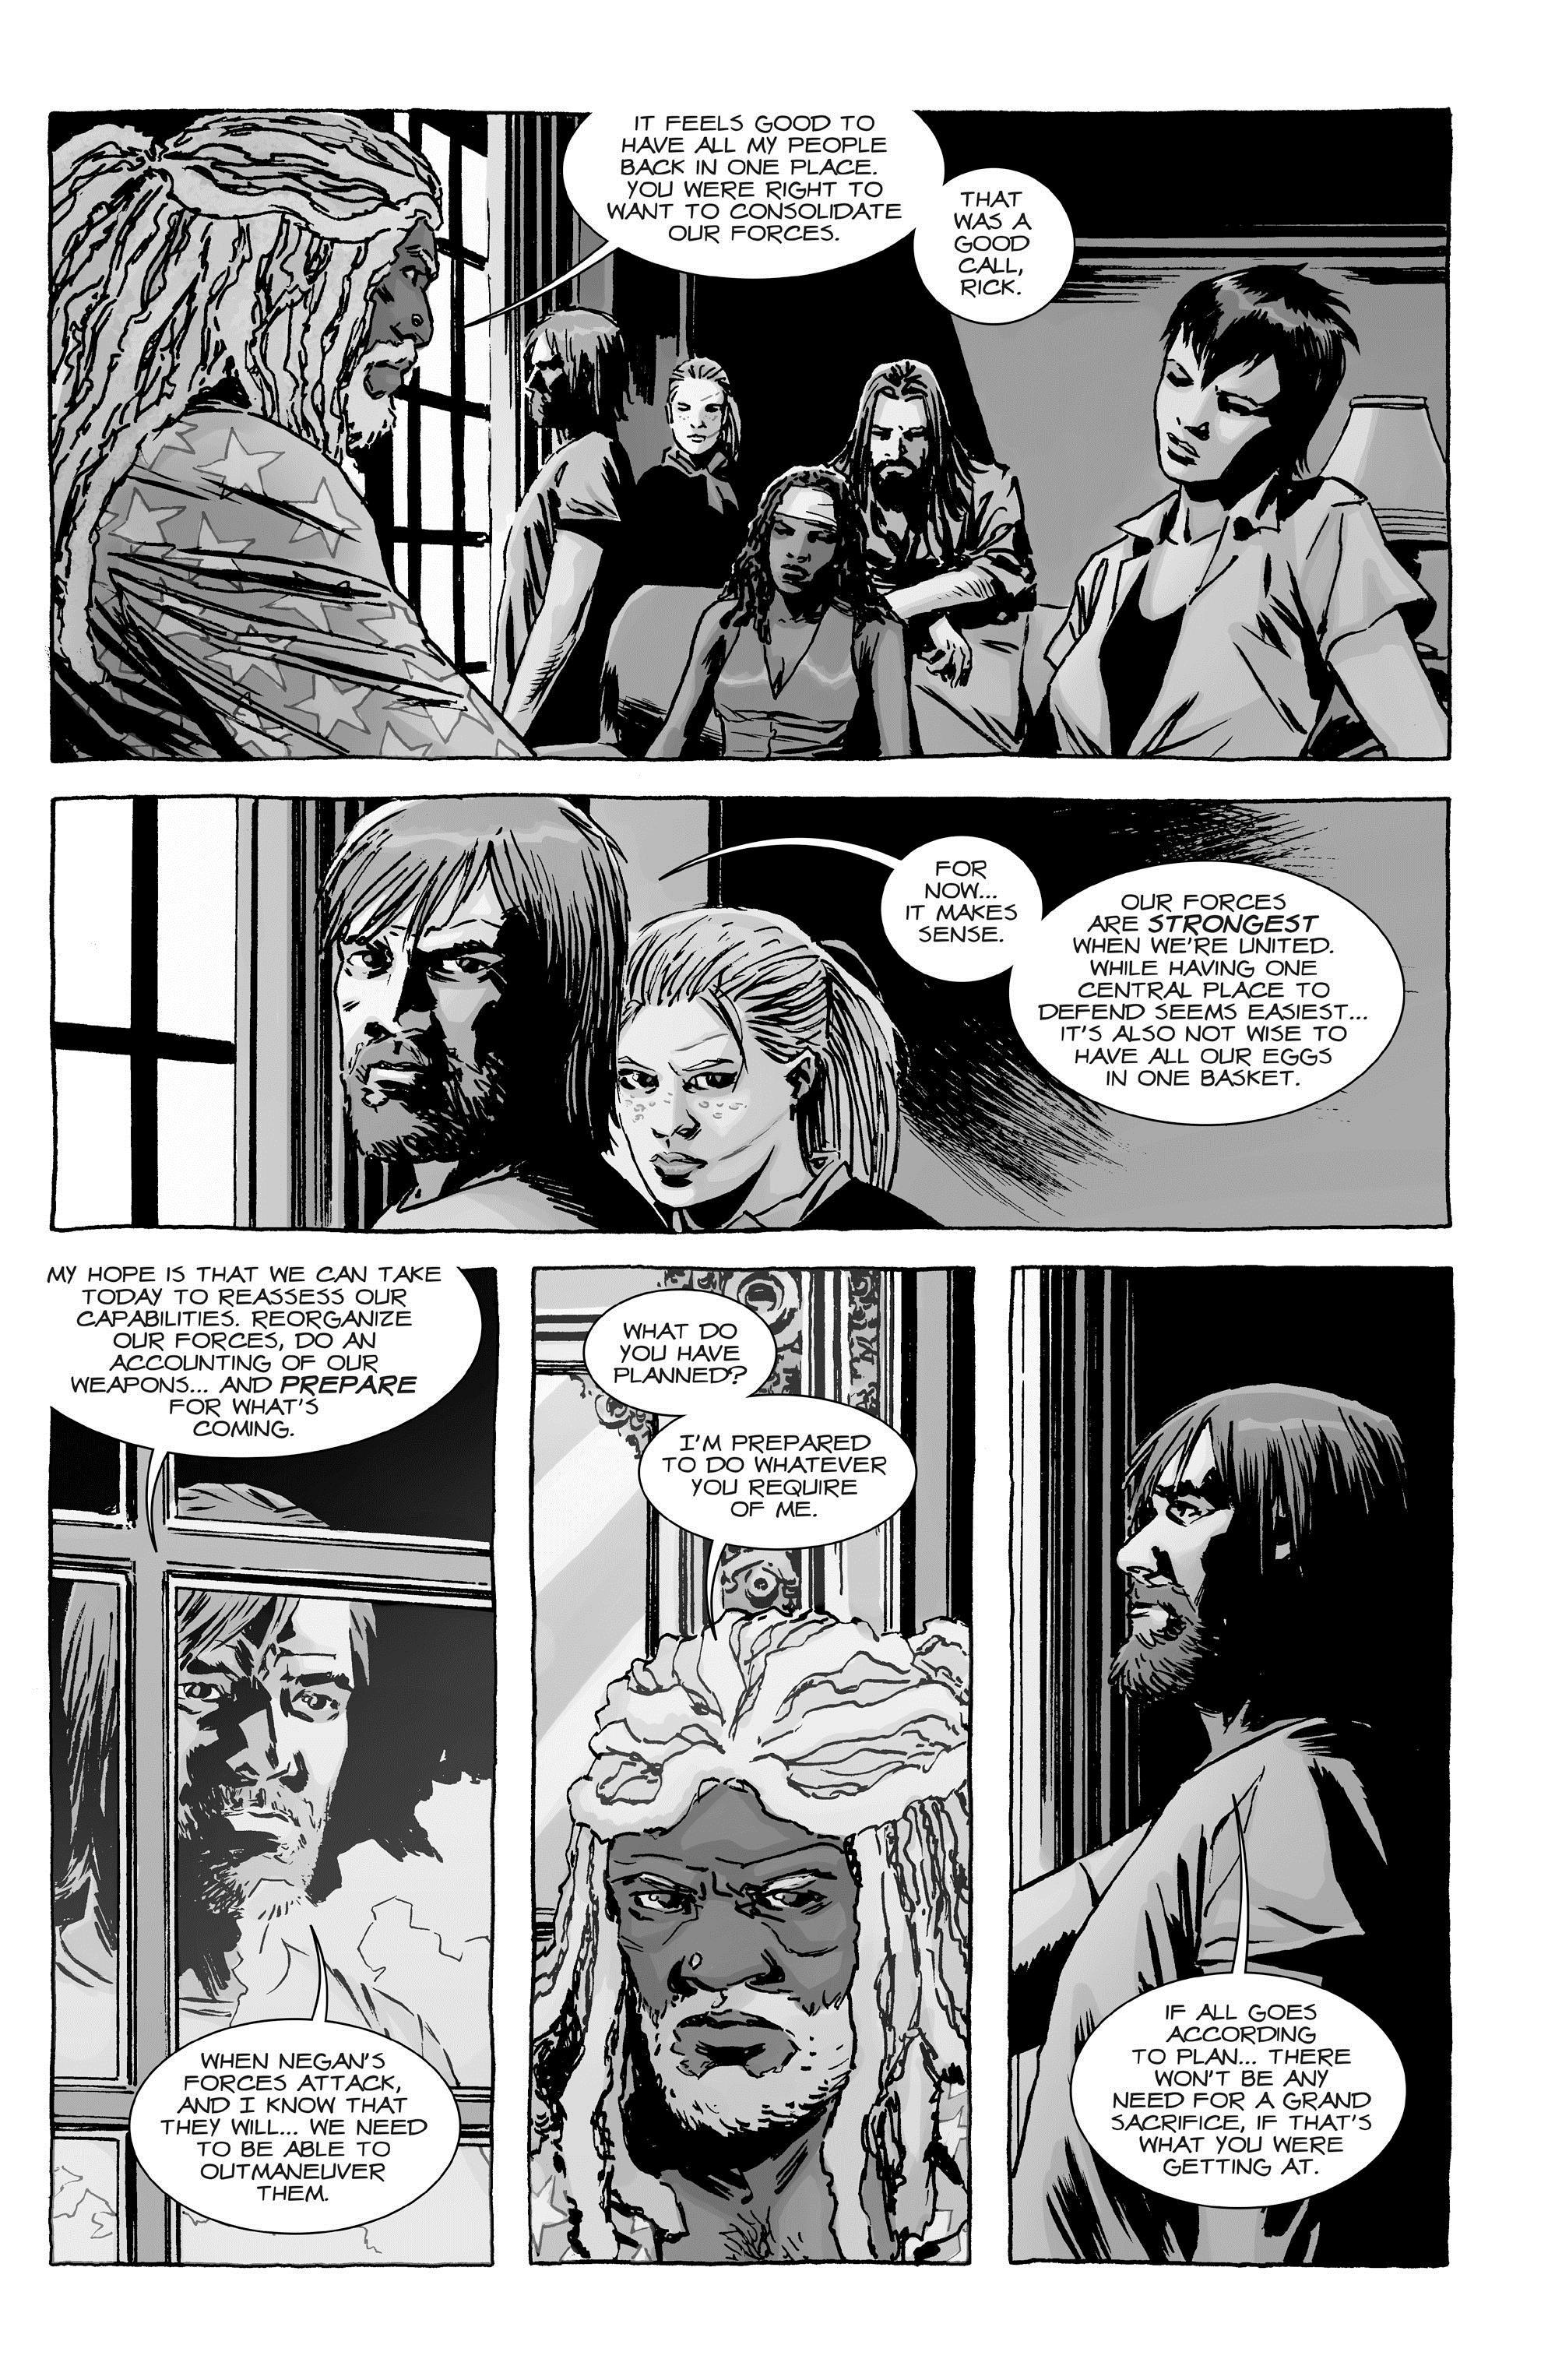 The Walking Dead - All Out War Part 2 review